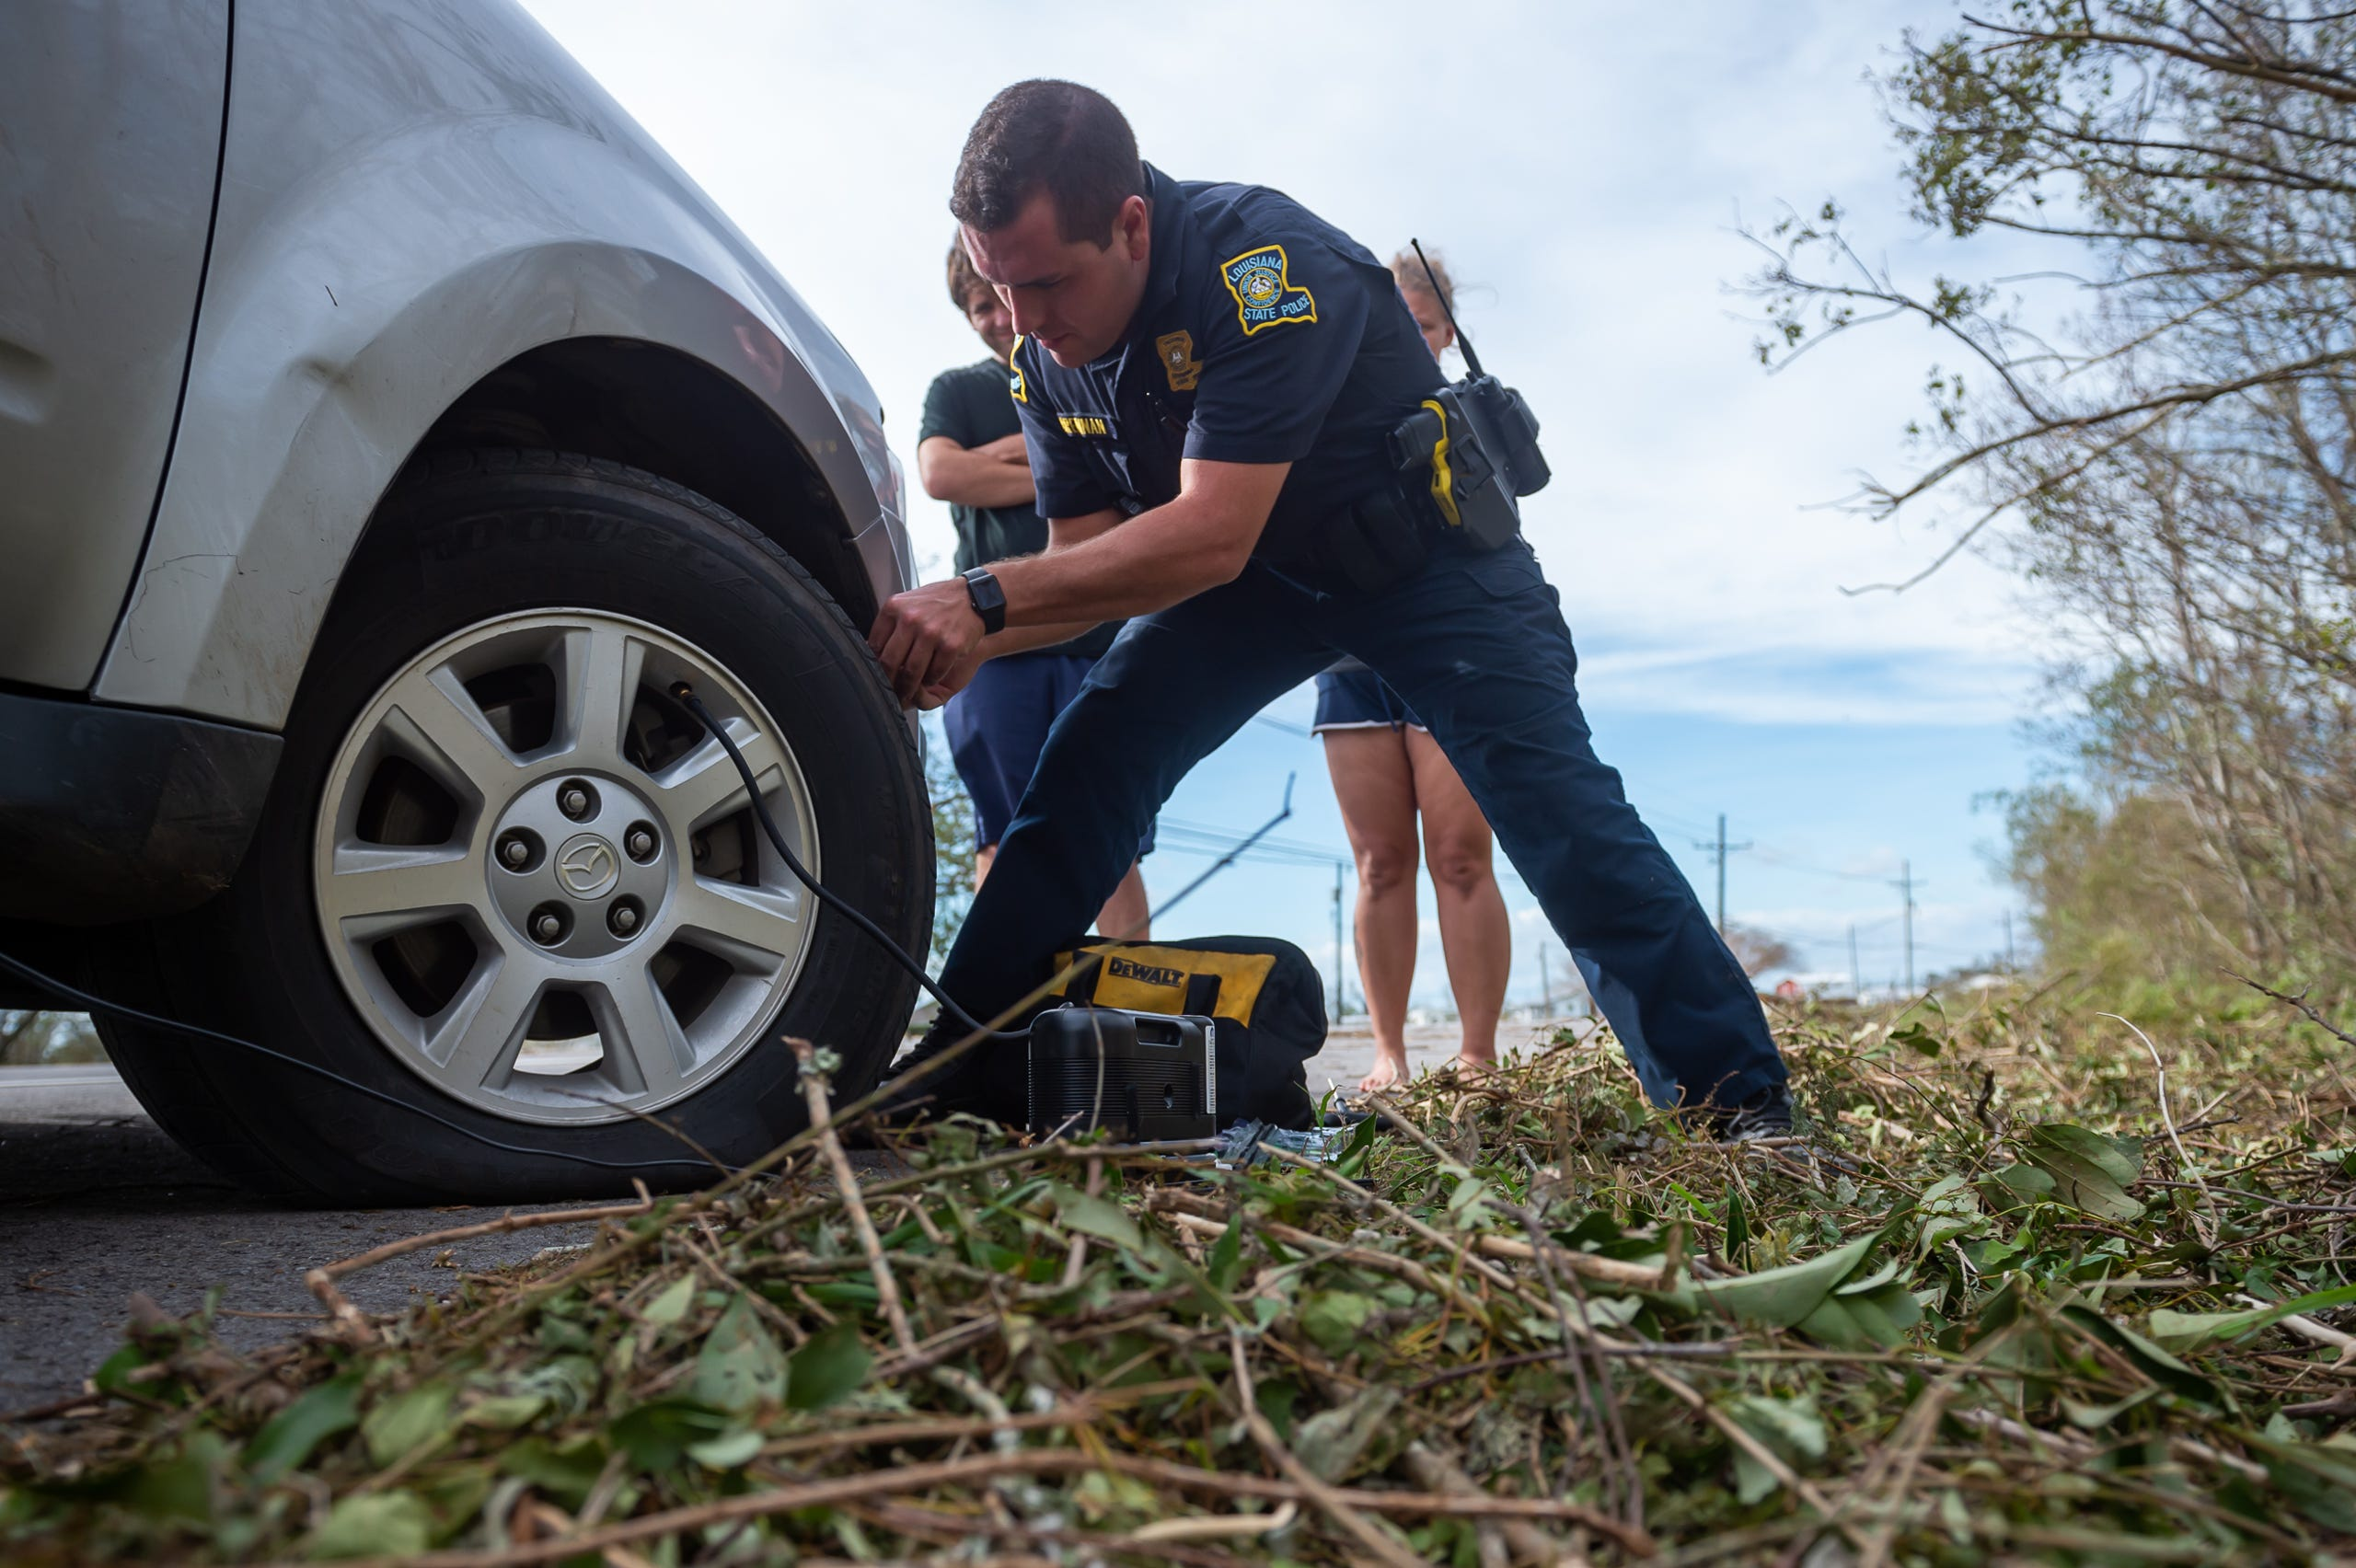 Louisiana State Trooper Ross Brennan assist motorist Justin Emmendorfer and Alexis Perry with changing and repaiiring a flat tire. Monday, Aug. 30, 2021.